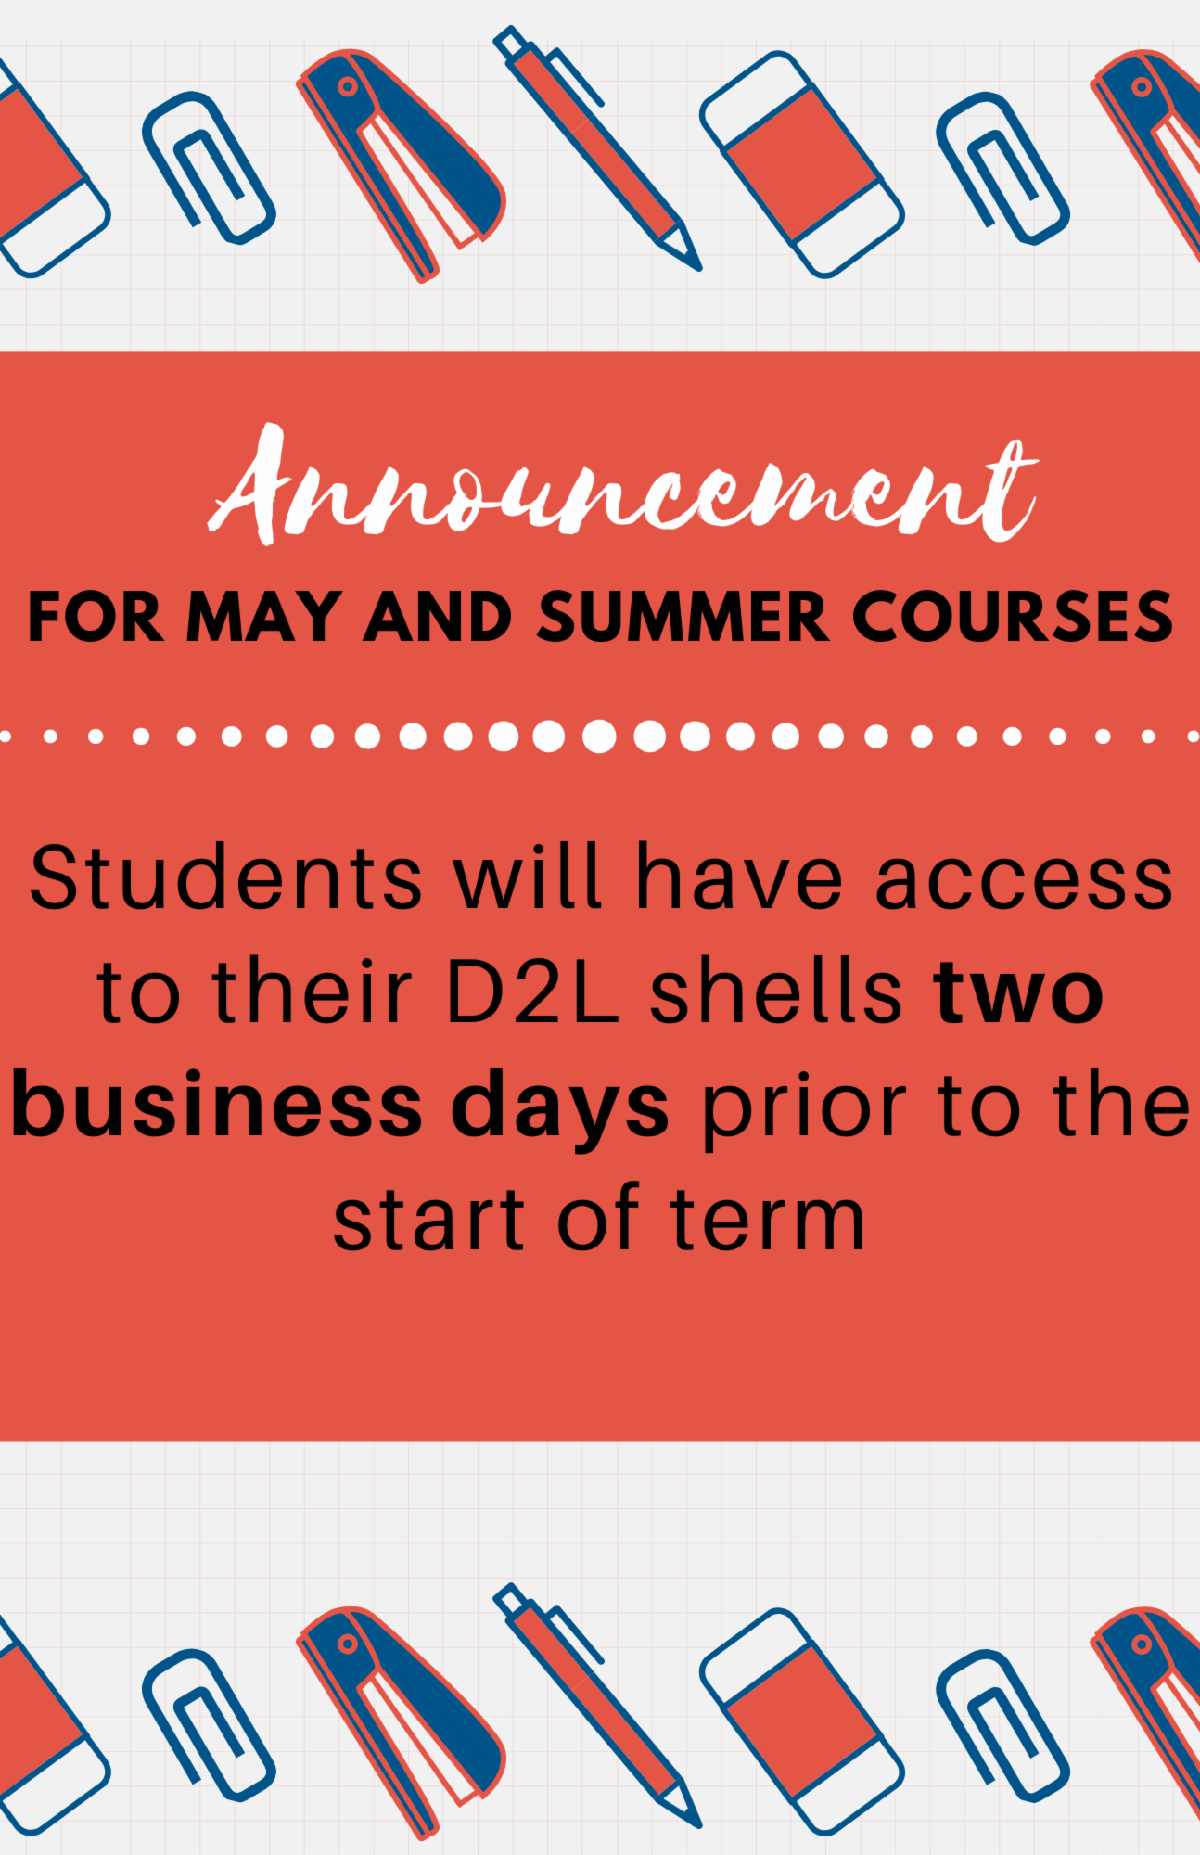 may and summer courses opening two days early